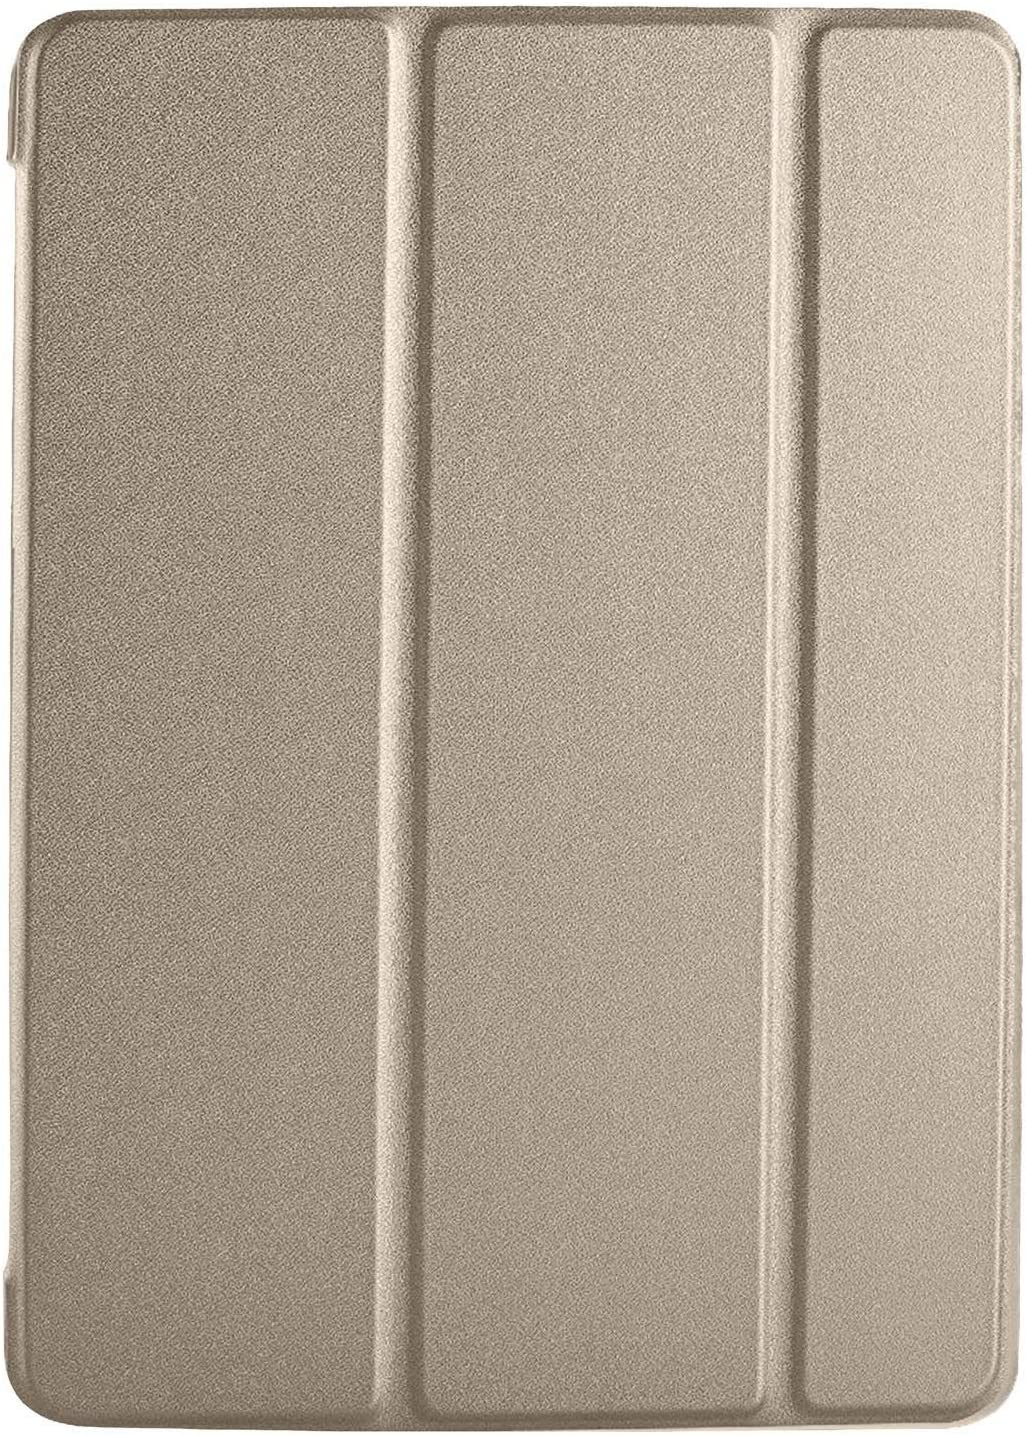 """DuraSafe Cases For iPad PRO / Air - 10.5"""" MQDX2LL/A MQDT2LL/A MQDW2LL/A MUUL2LL/A MUUK2LL/A MUUJ2LL/A MQDY2LL/A MUUT2LL/A Ultra Slim Cover with Auto Sleep/Wake function - Gold"""